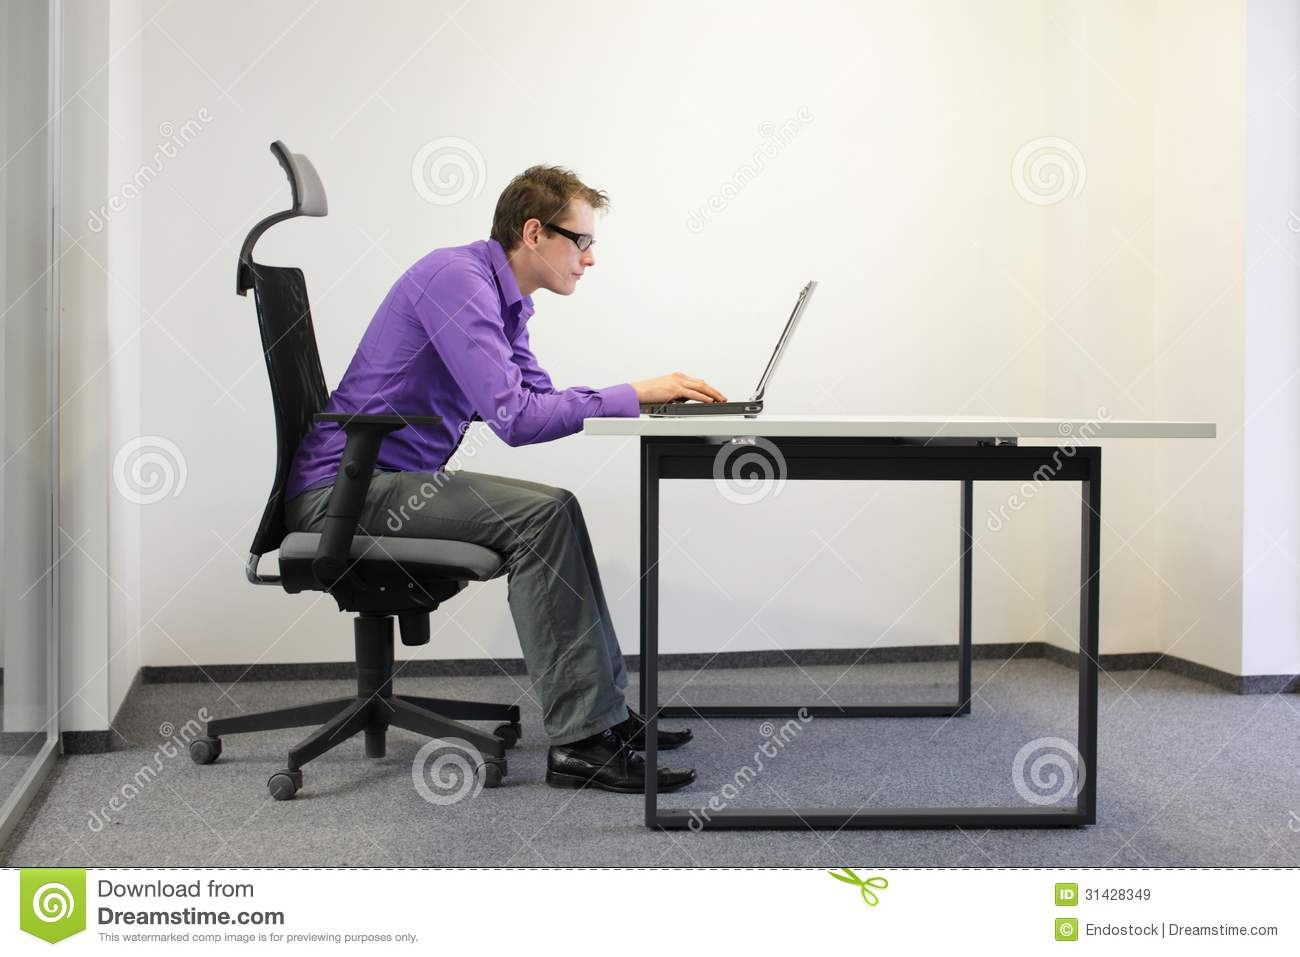 bad posture in chair best living room chairs shortsighted businessman sitting at laptop